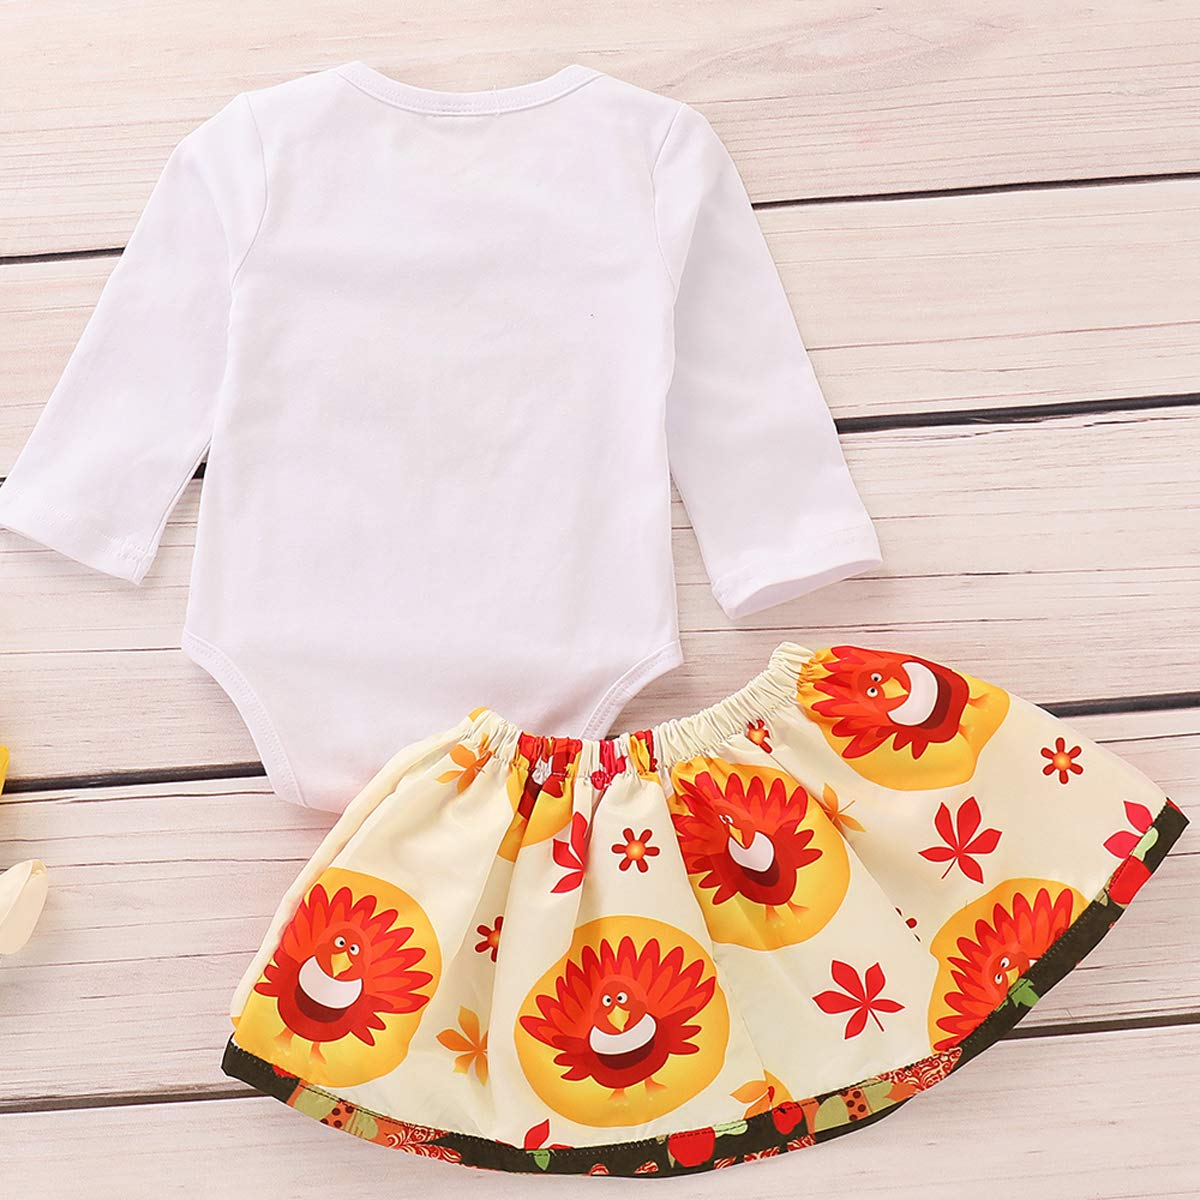 WOSENHK Newborn Baby Girls Thanksgiving Outfits Turkey Printed Long Sleeve Rompers+Bowknot Skirts 2pcs Clothes Set